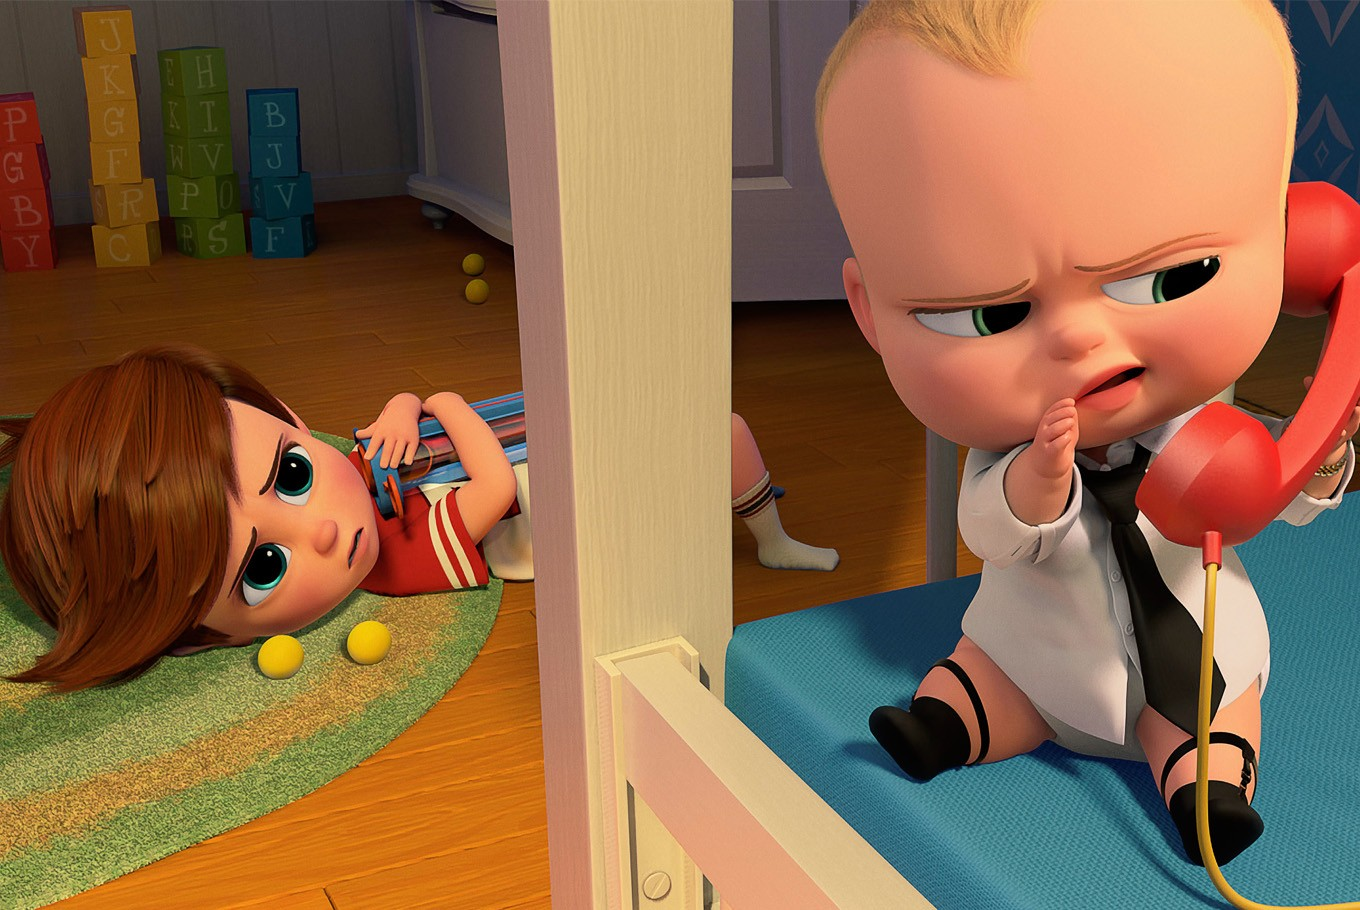 Boss Baby' dethrones 'Beauty and the Beast' with $49M debut